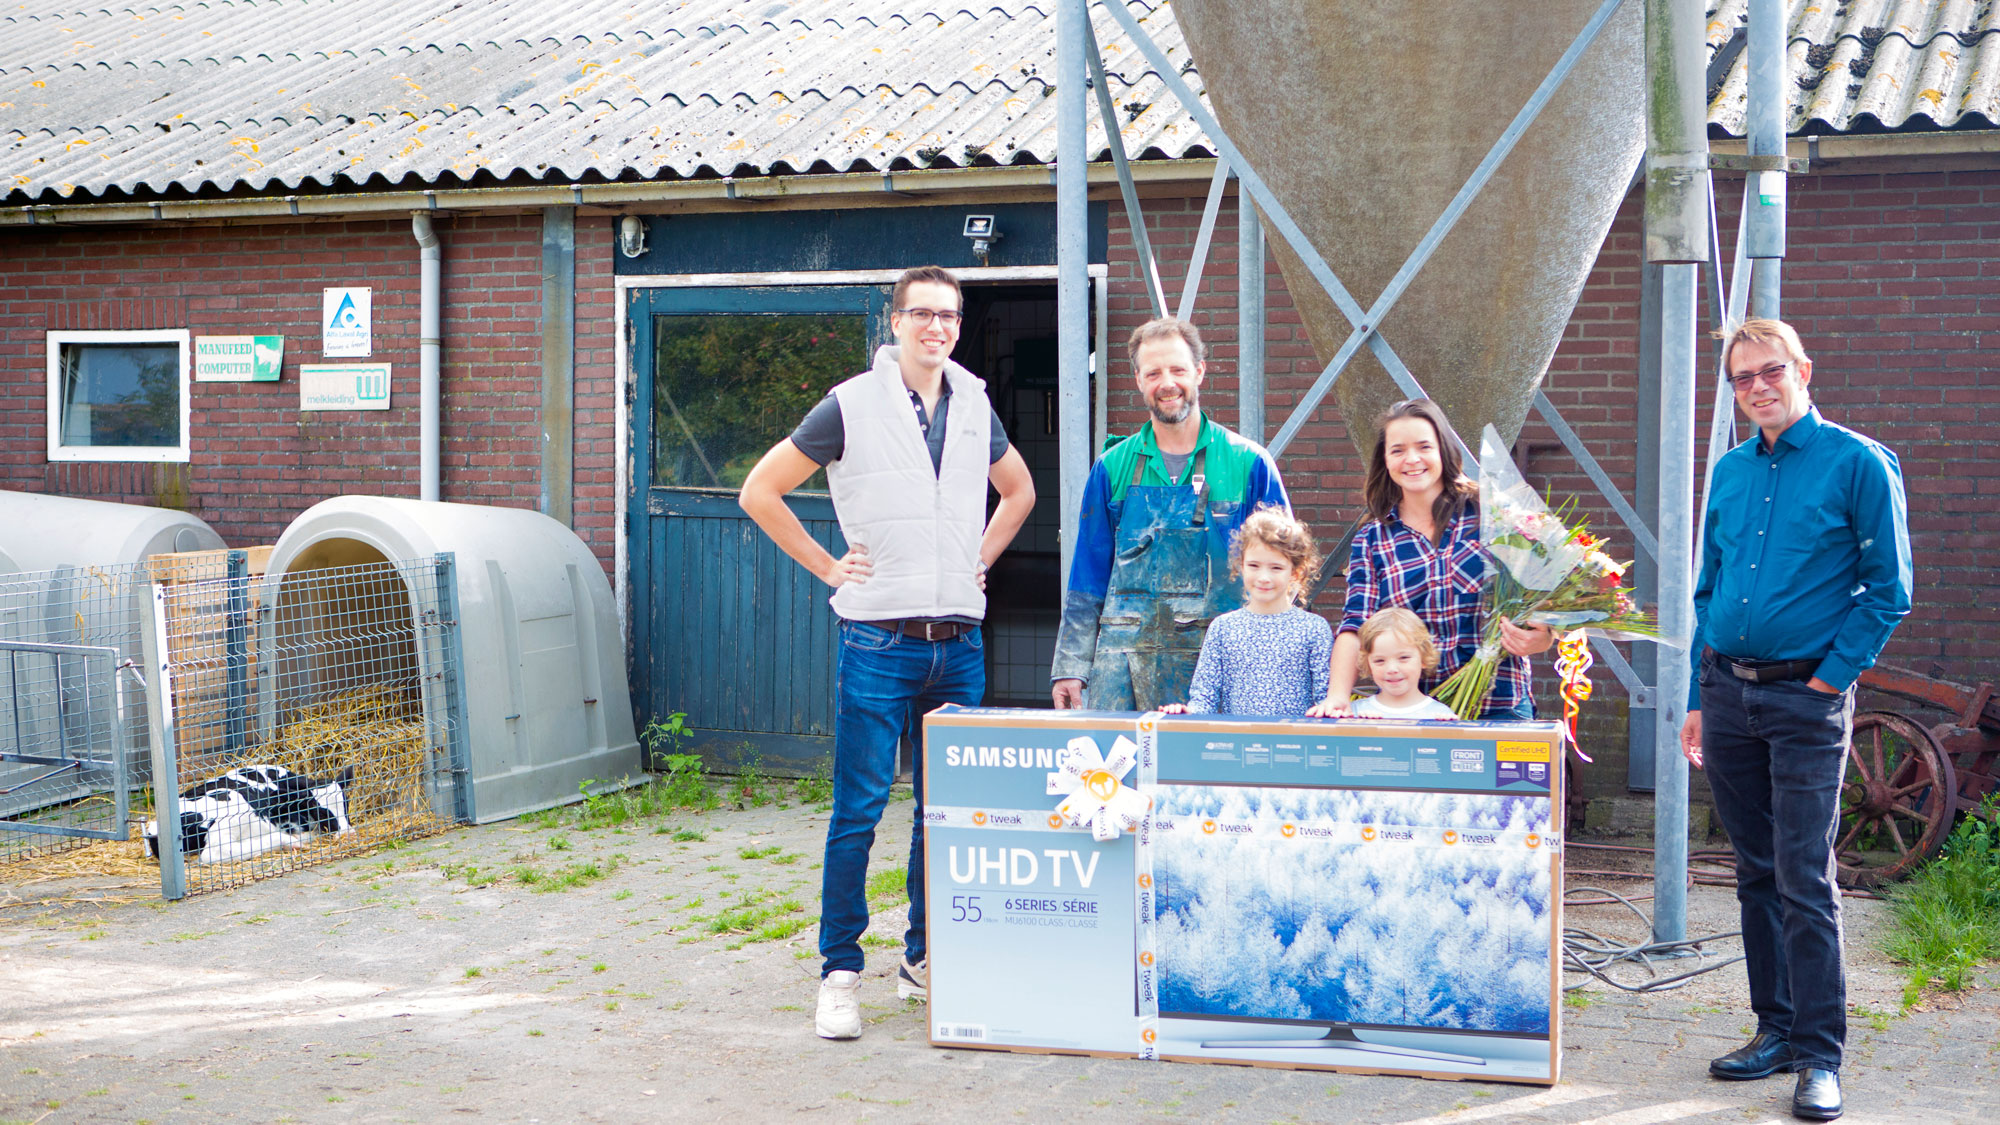 Prijsuitreiking Tweak familie Vedder